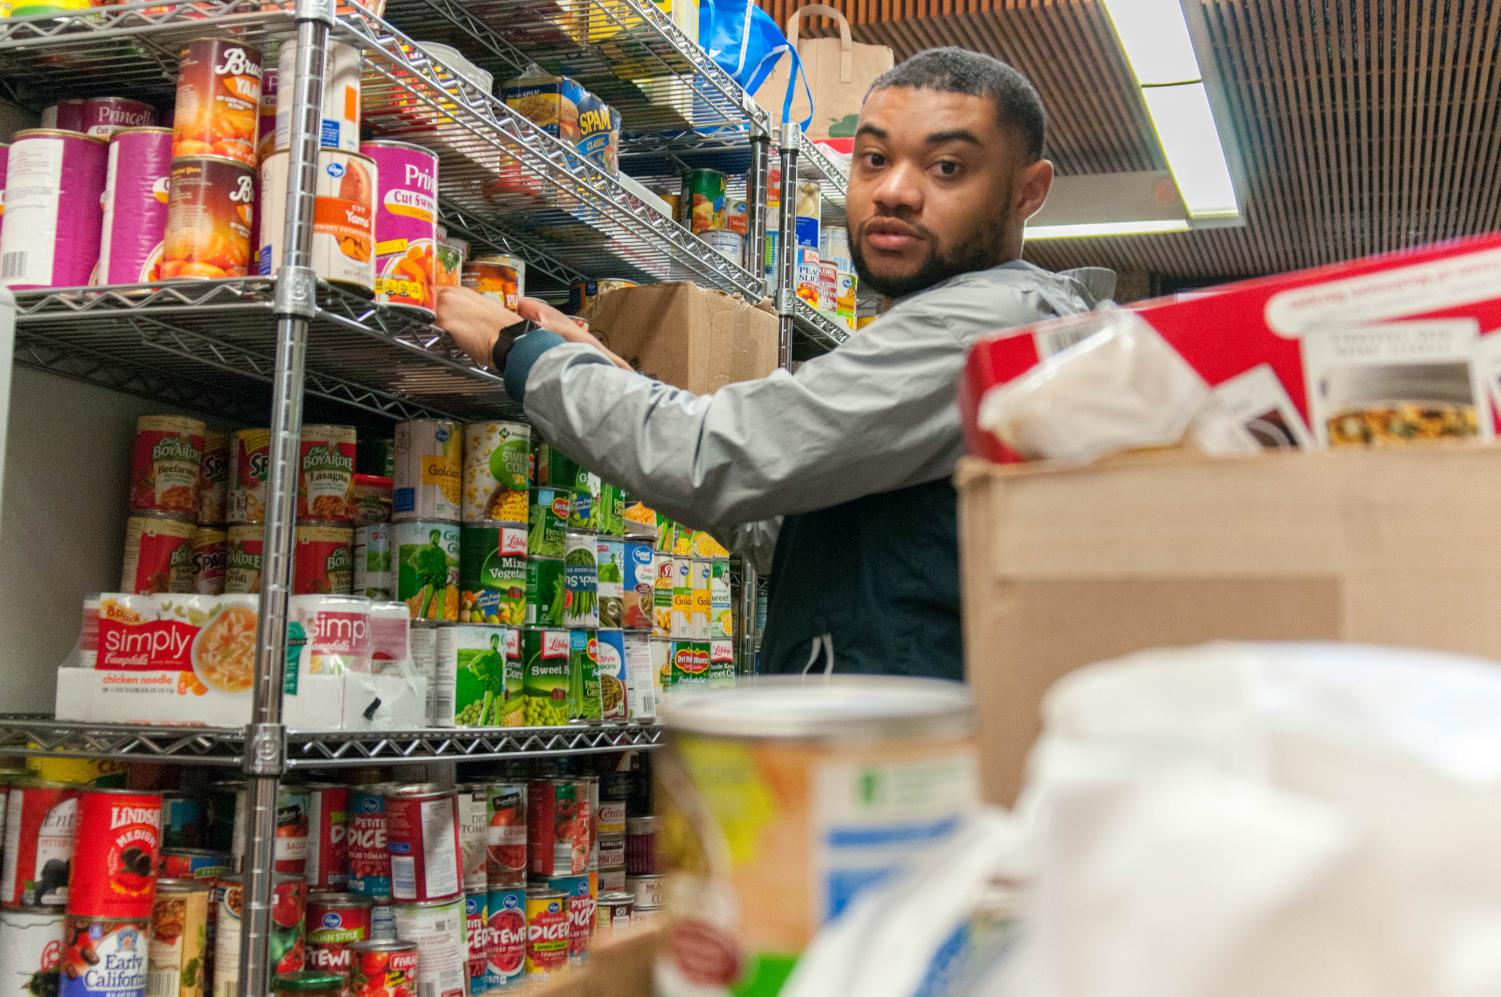 Isaiah Robinson, 20, Computer Science/ Business, stocks up the Warrior shelves with food donations. Photo credit: Elena Perez